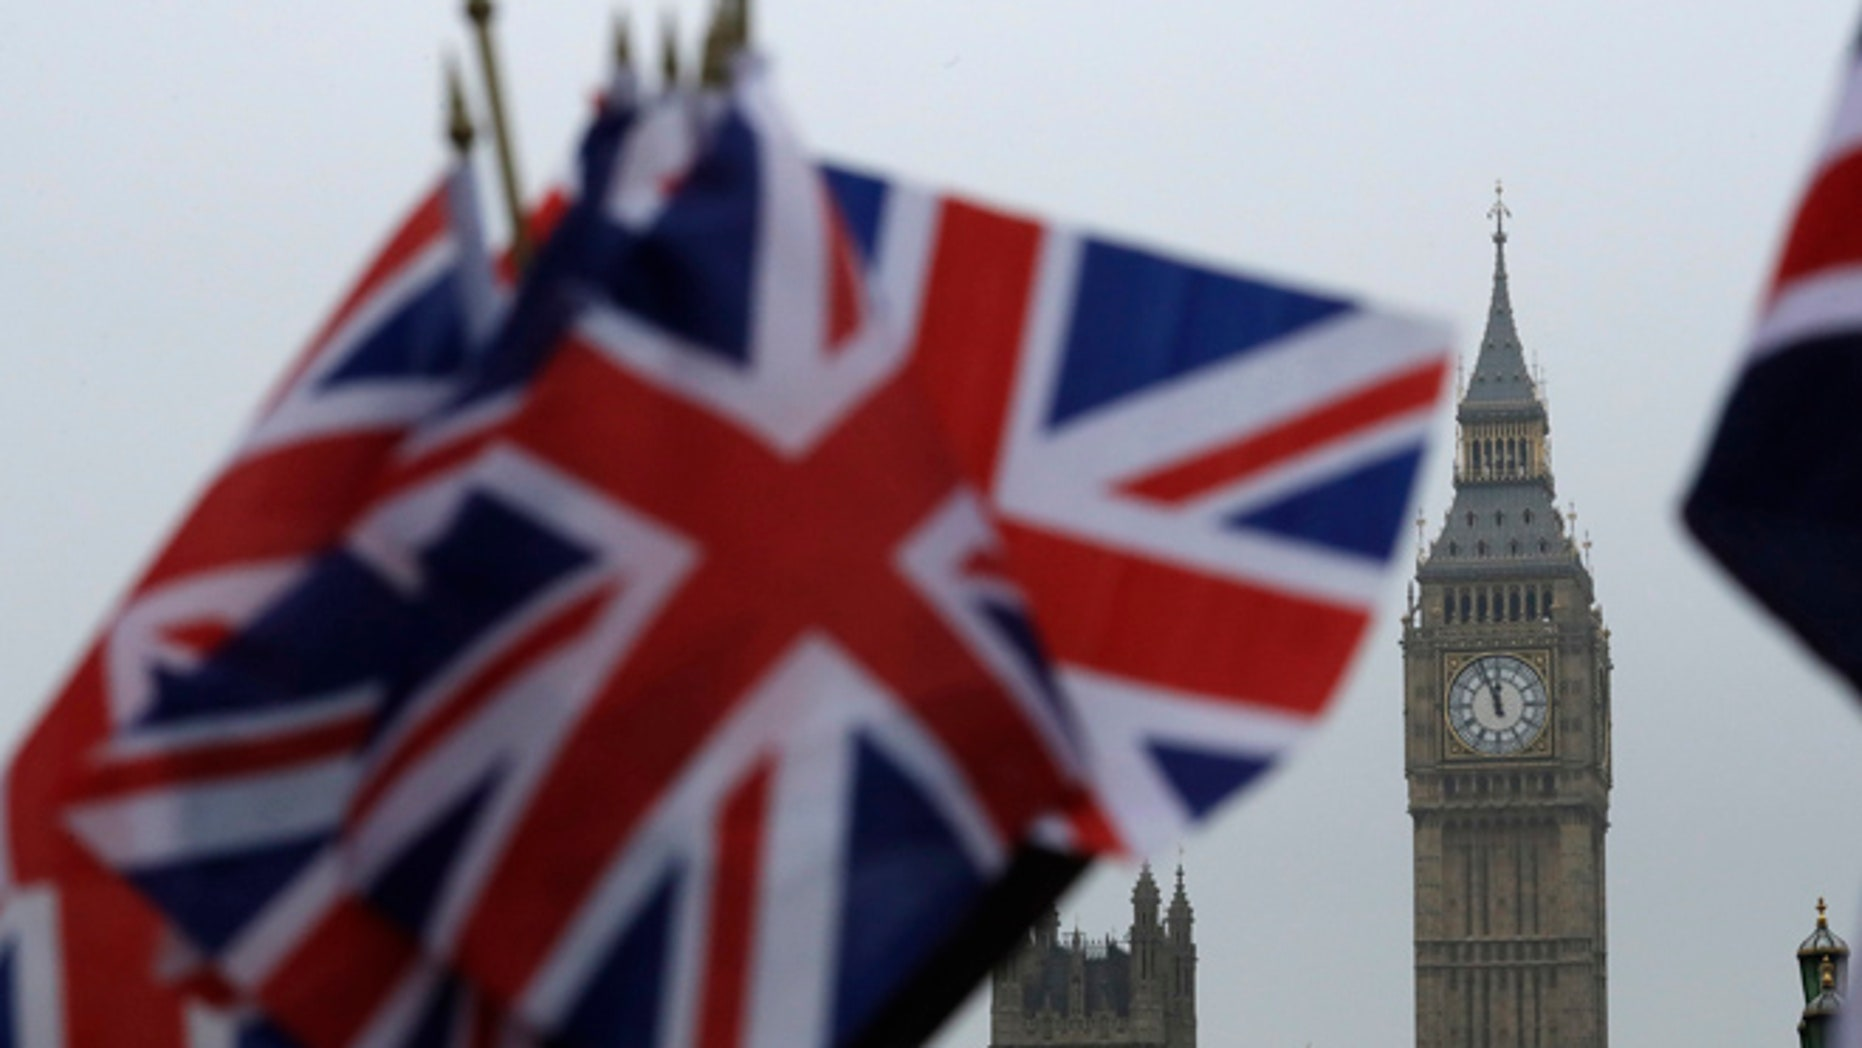 Union flags displayed on a tourist stall, backdropped by the Houses of Parliament and Elizabeth Tower containing the bell know as Big Ben, in London, Wednesday, Feb. 8, 2017.